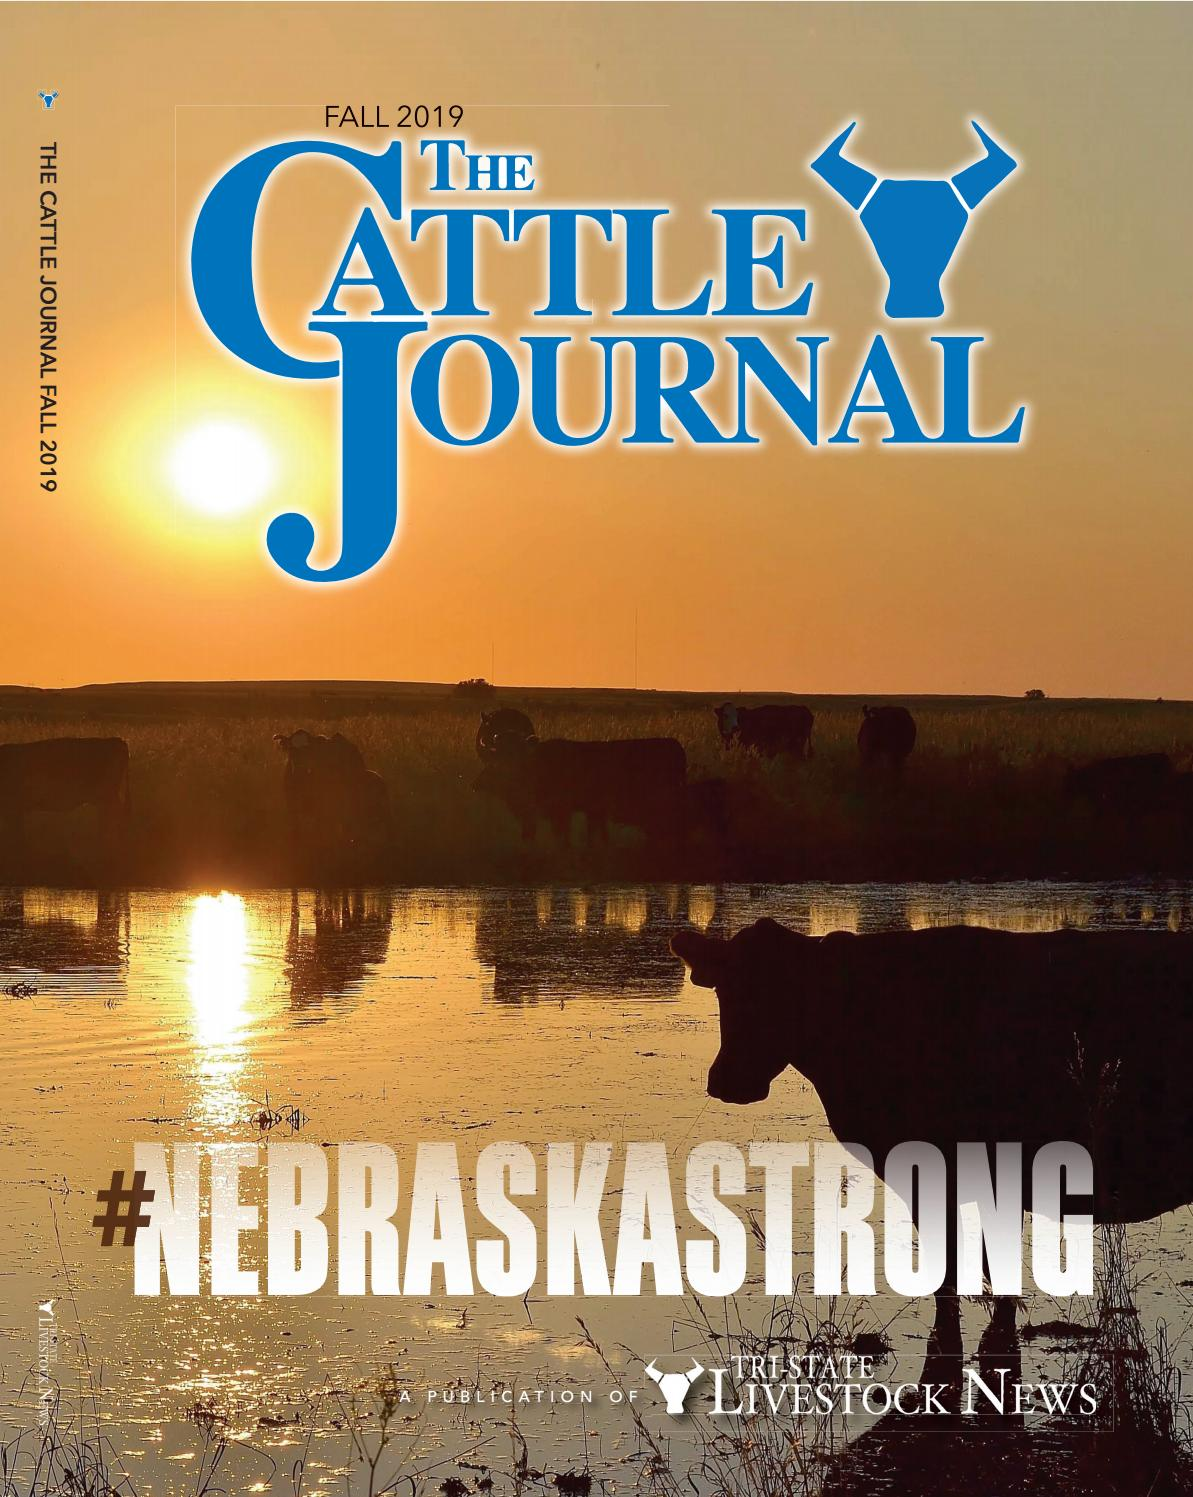 Design On Stock Blizz Bank.Fall Cattle Journal 2019 Nebraskastrong By Tri State Livestock